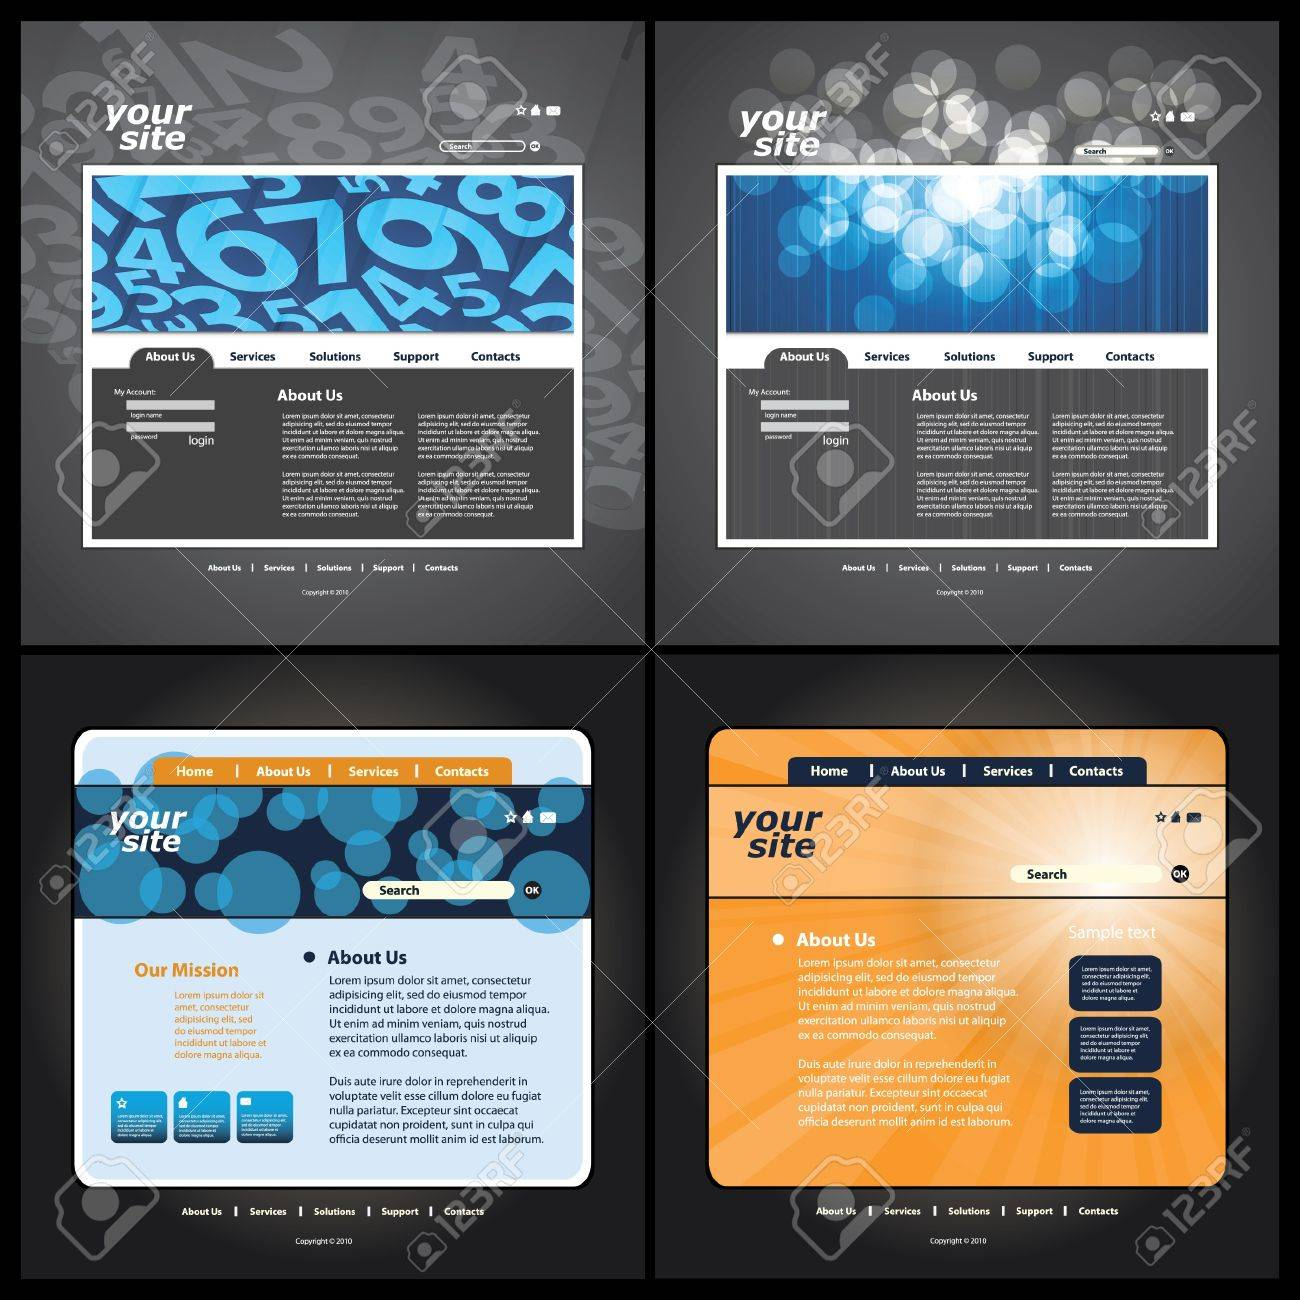 Abstract business web site design template vector Stock Vector - 10177301